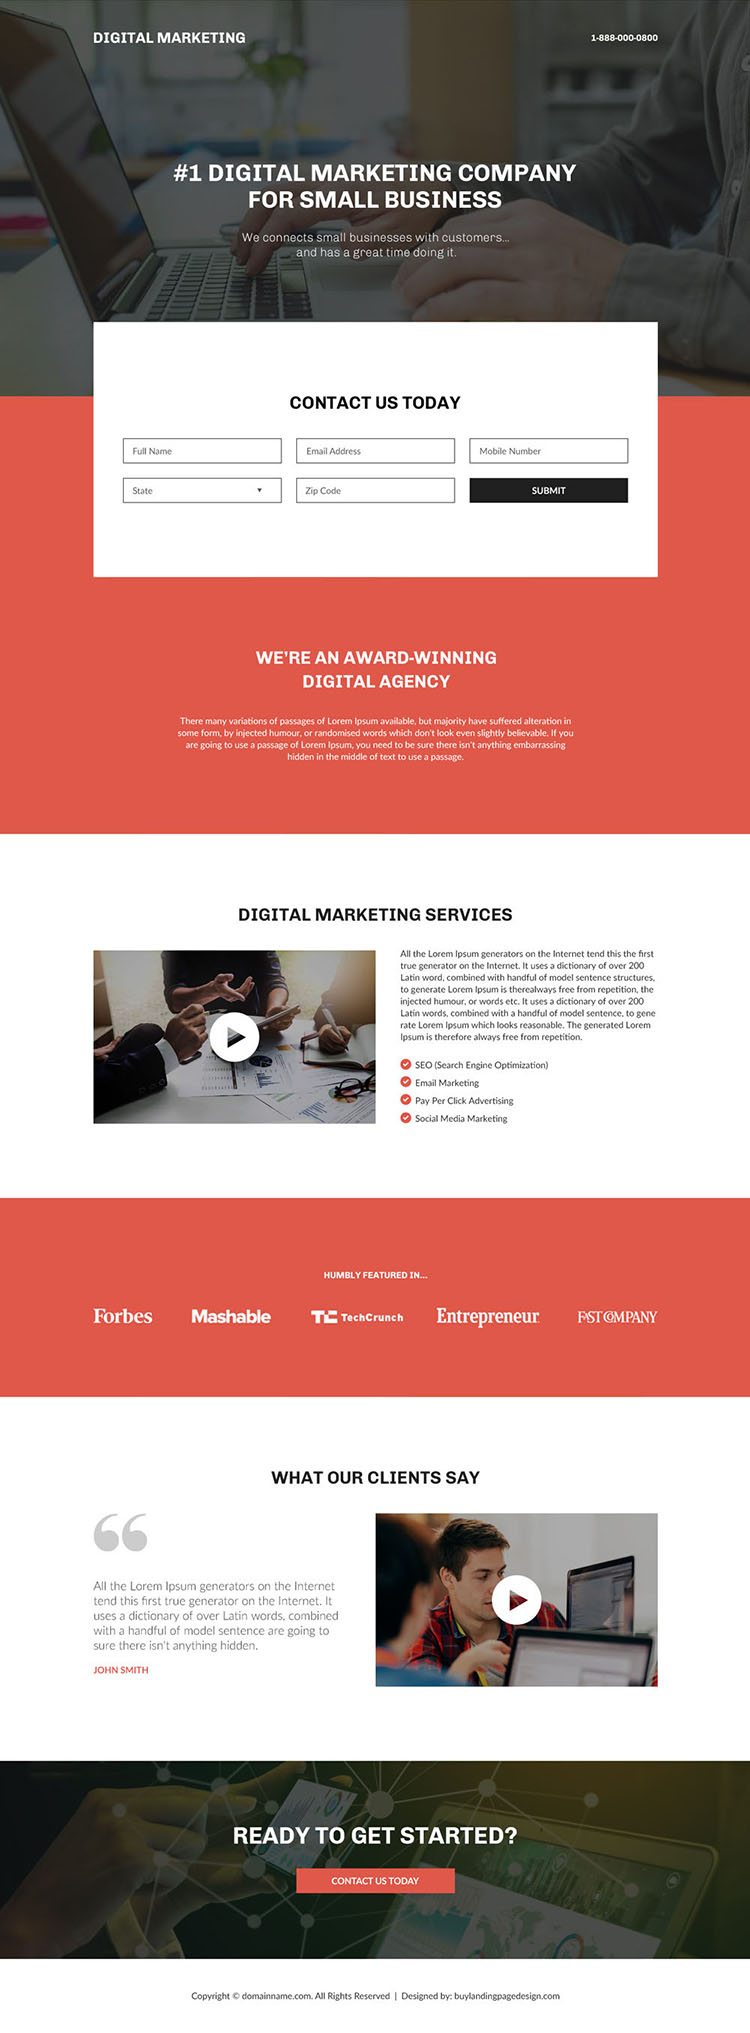 digital marketing company for small business landing page